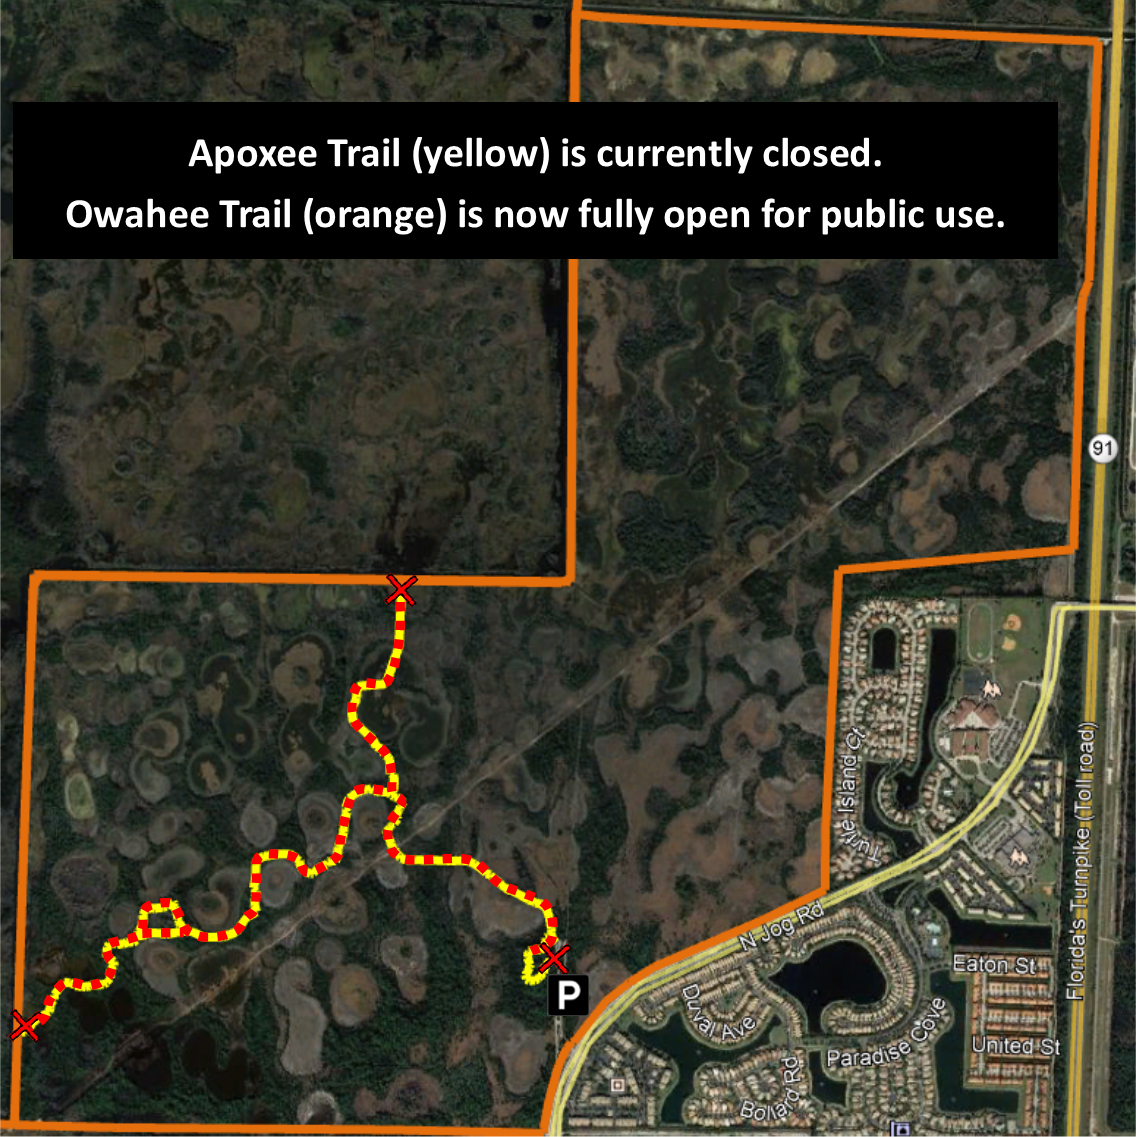 map showing apoxee trail is closed, but owahee trail is fully open